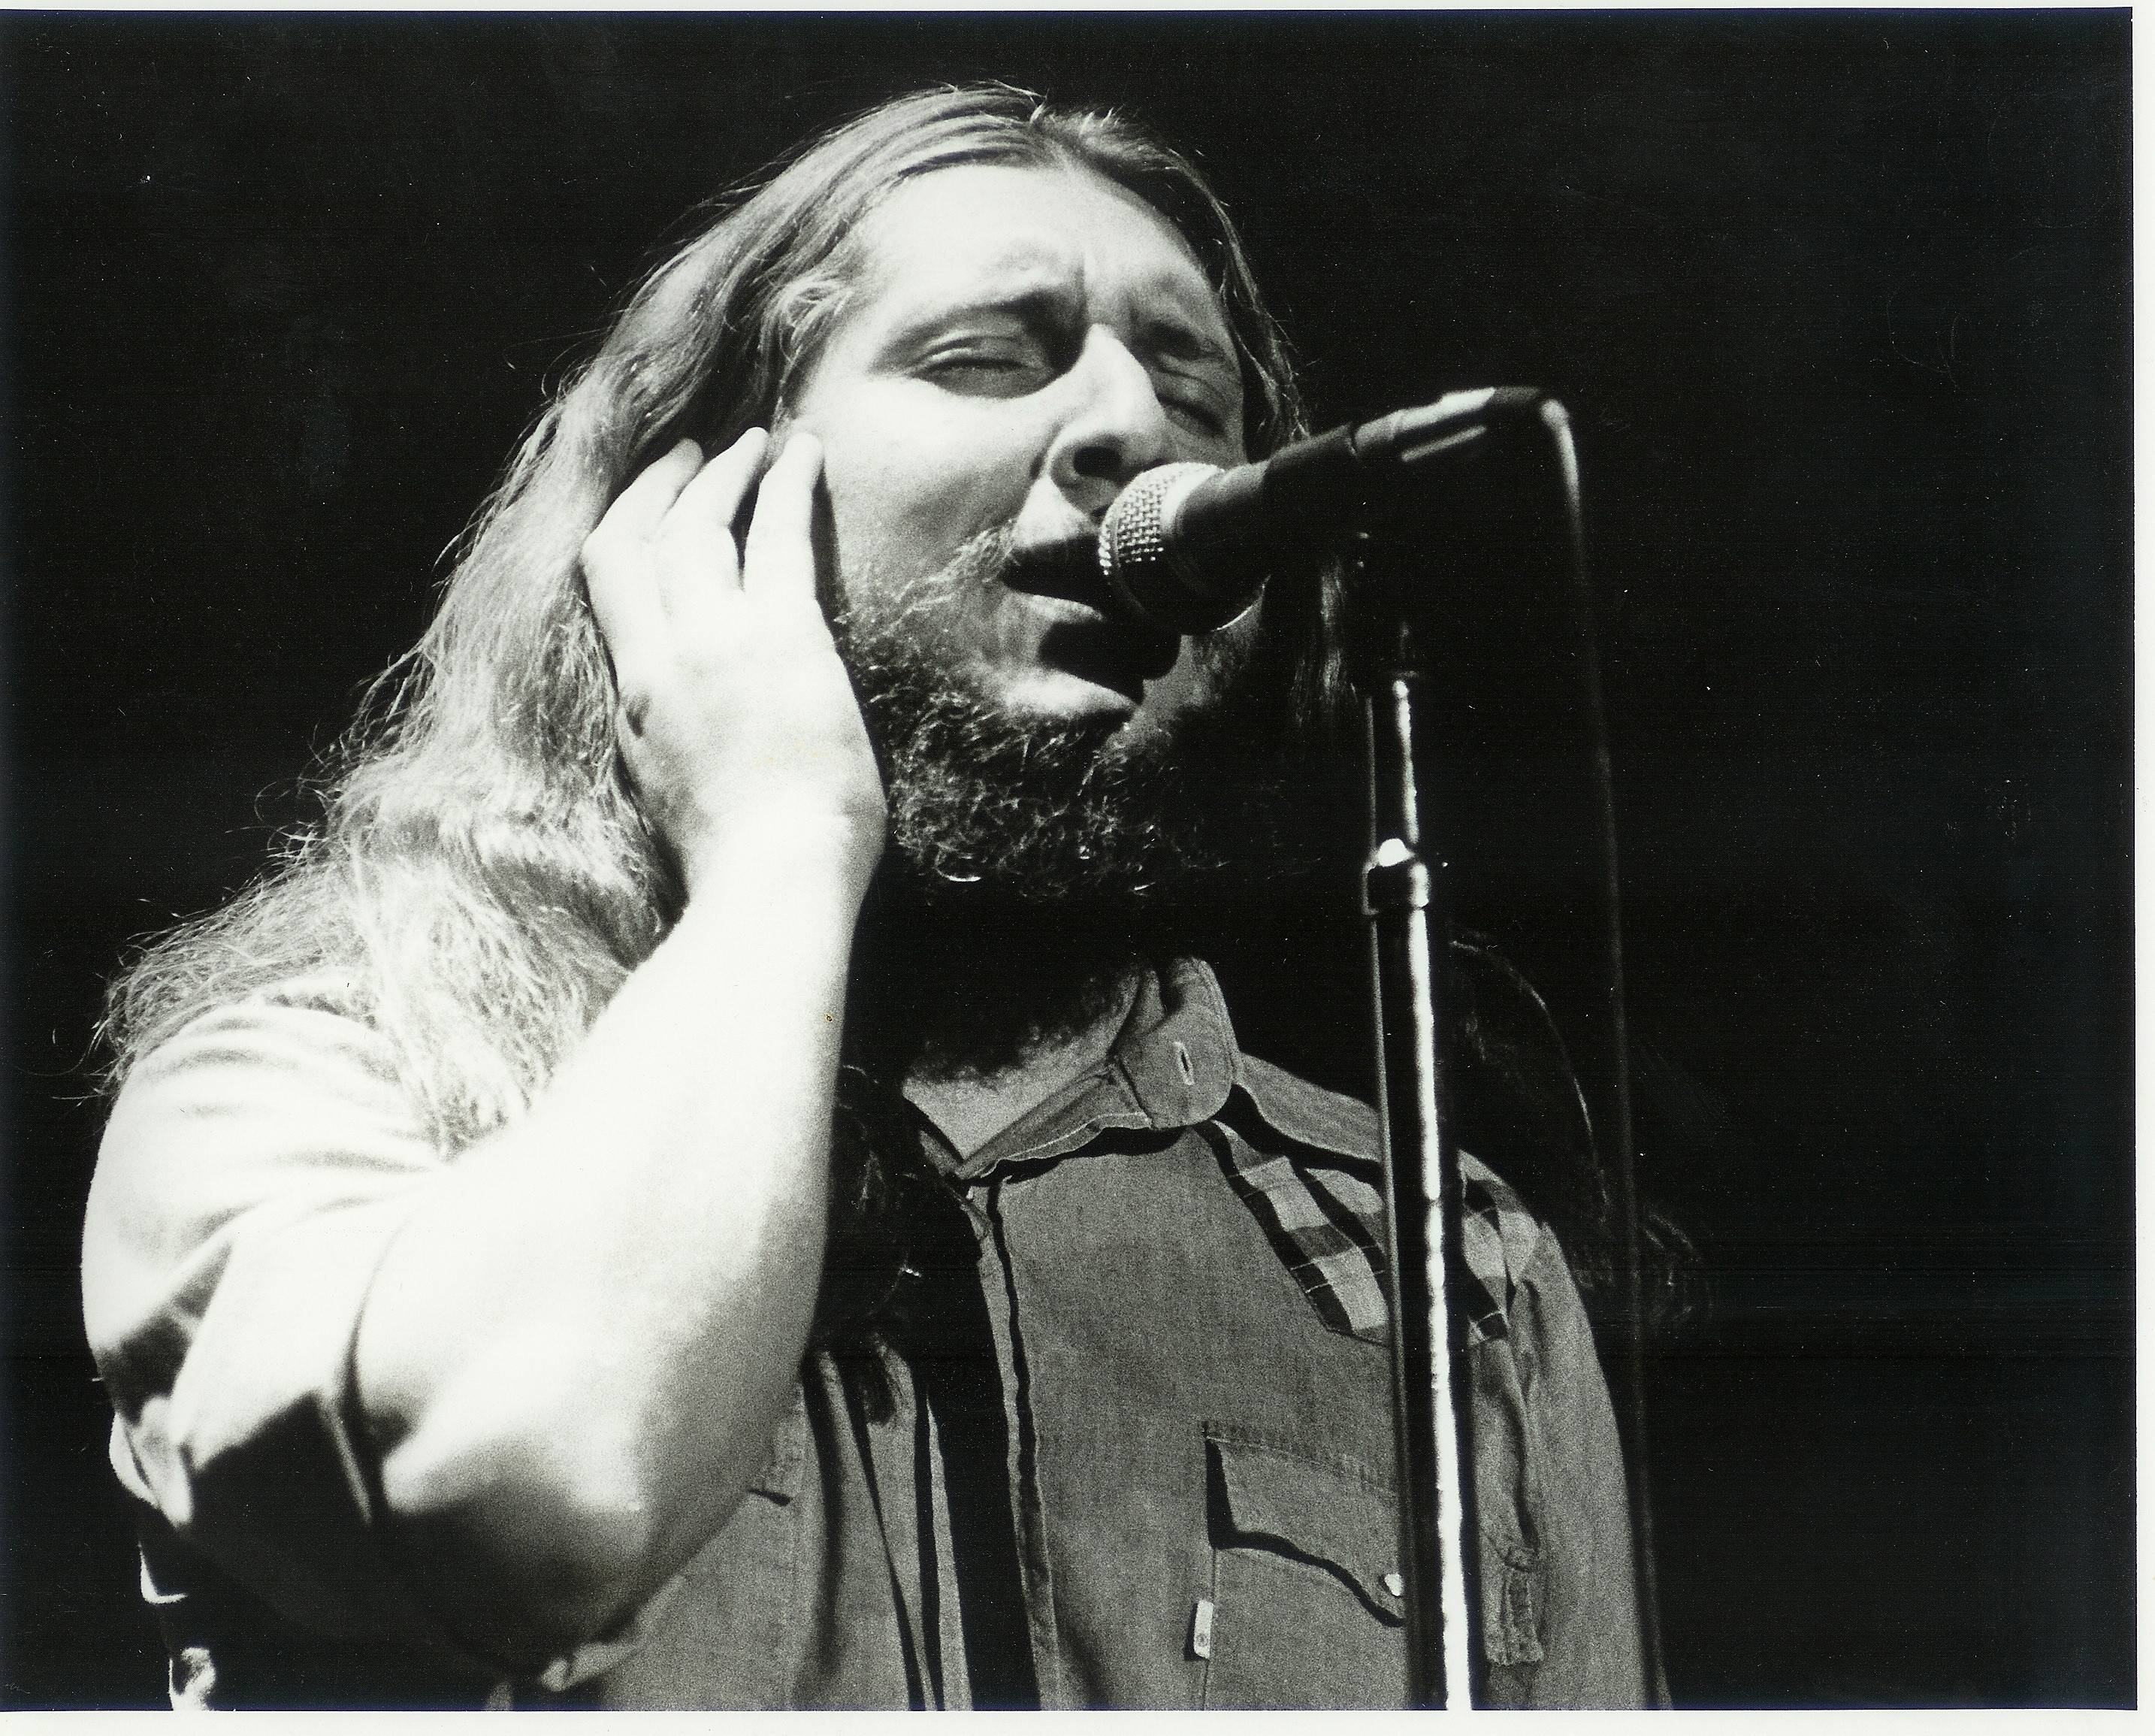 Singer Doug Gray, pictured here in the early 1970s, is the only original member remaining in the Marshall Tucker Band. The Southern rock band will play a Thursday, May 1, show in Bolingbrook.